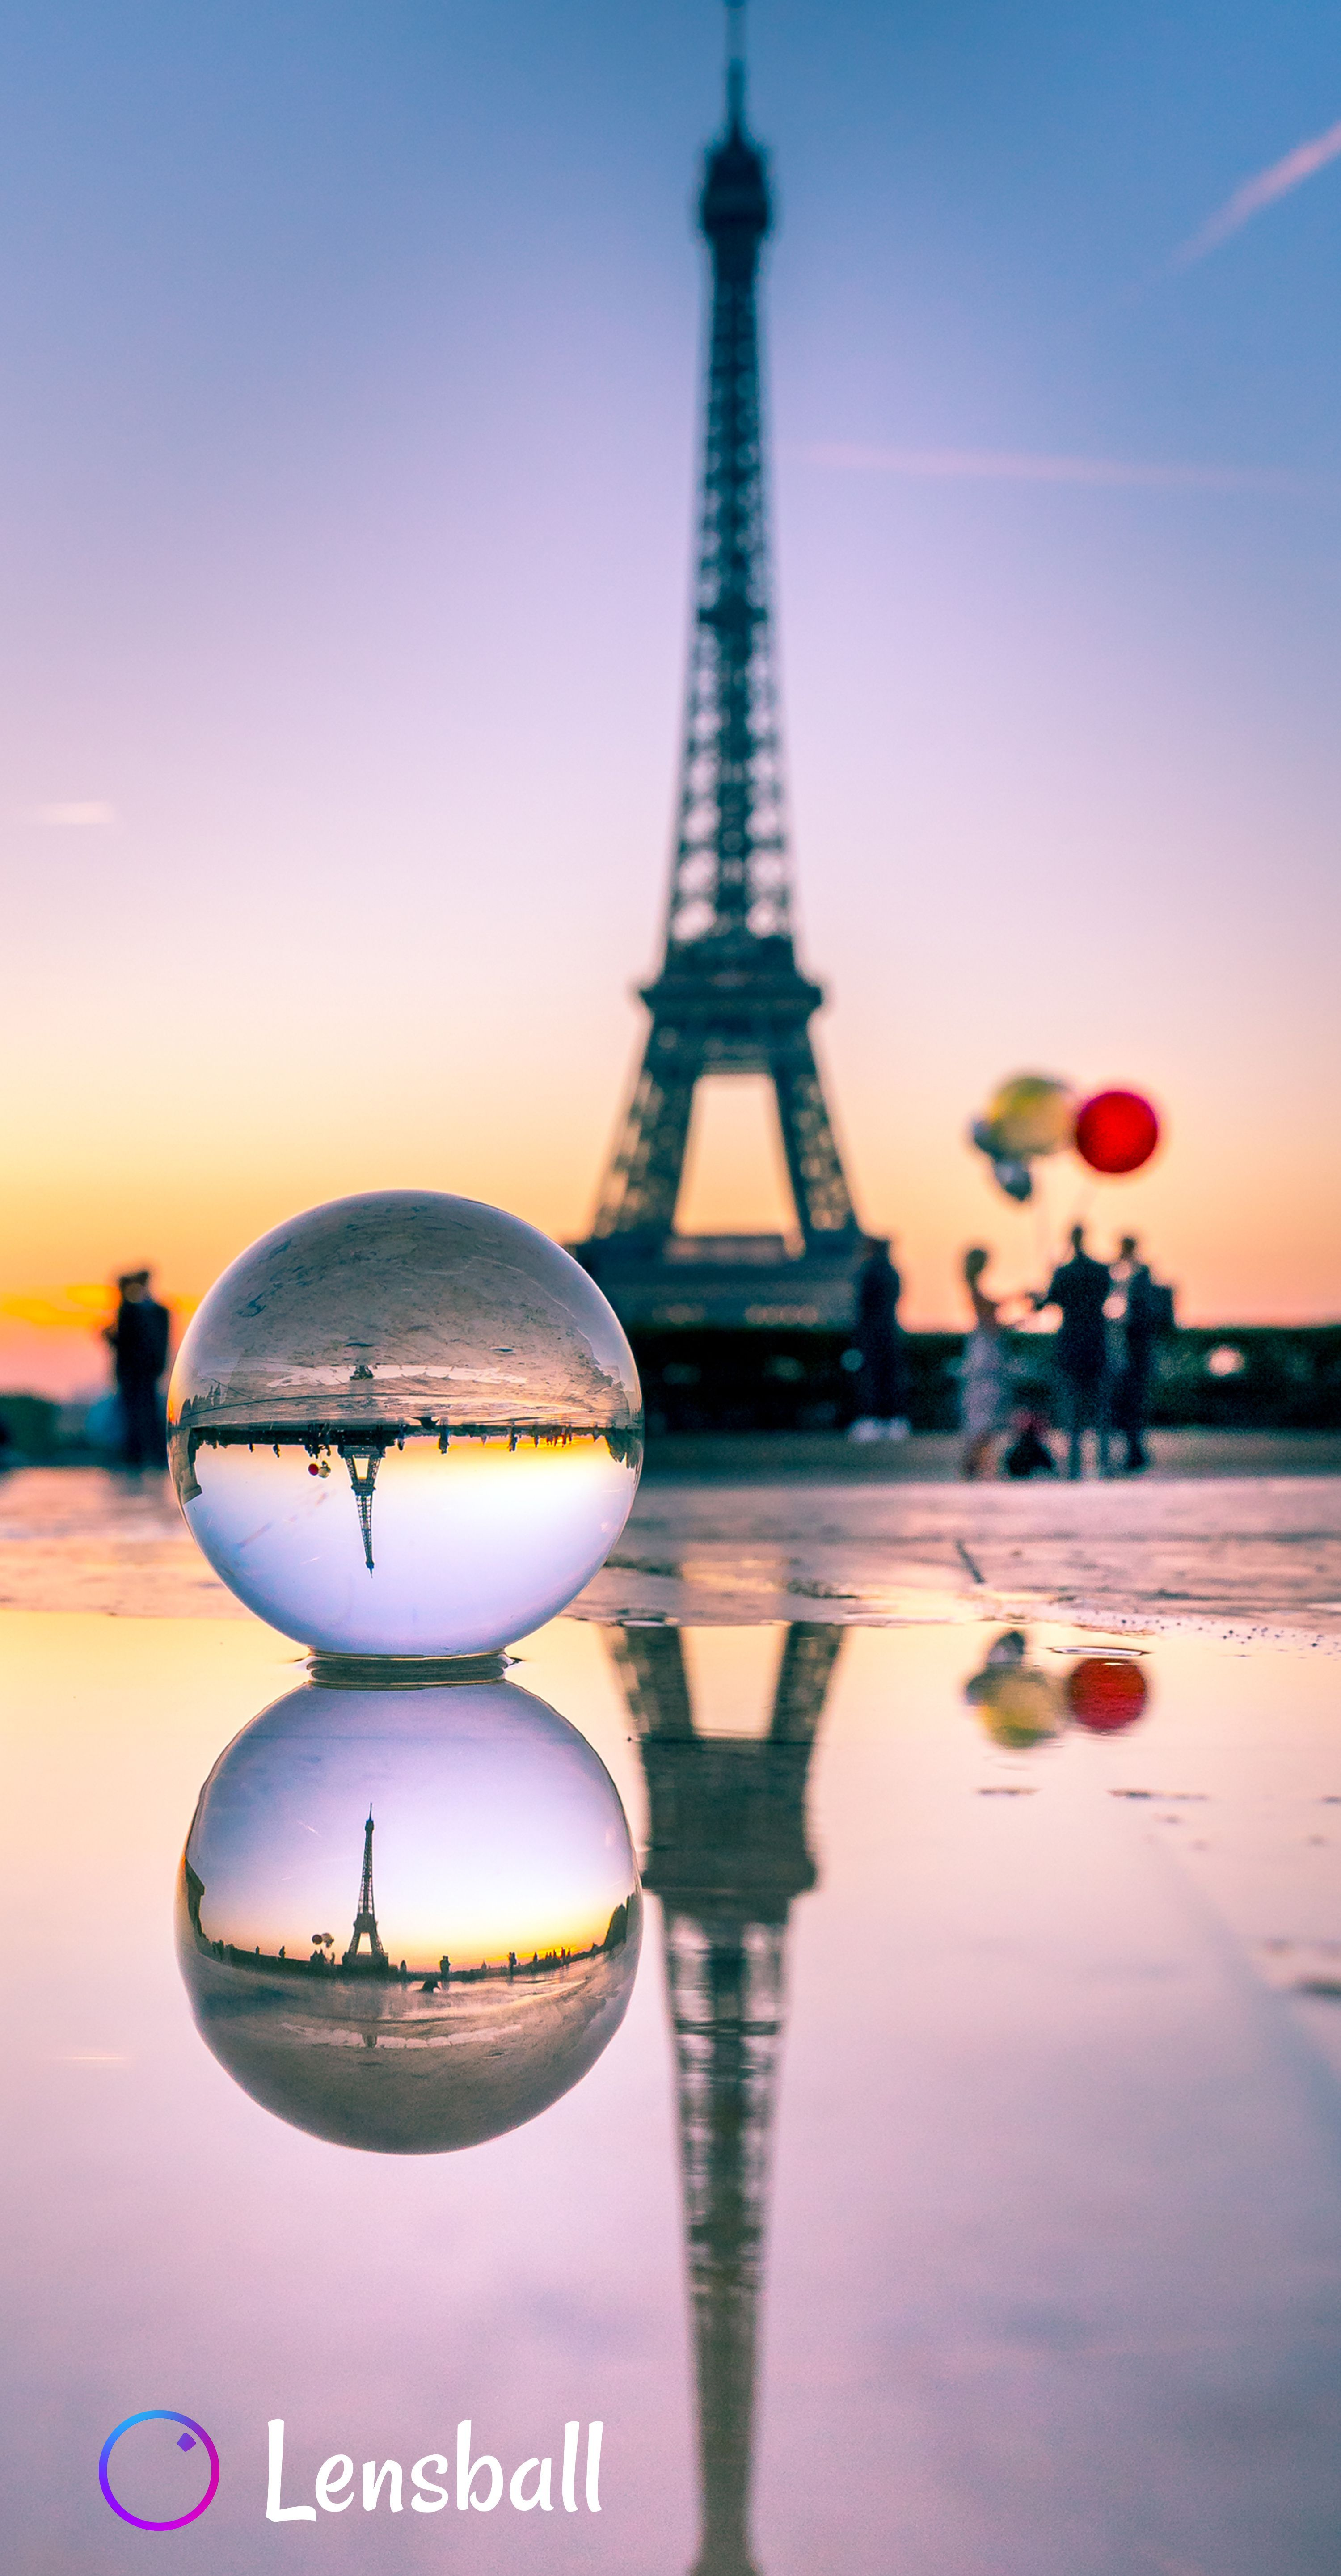 Lensball Wedding Photography in Paris at sunset with the Eiffel Tower in the background